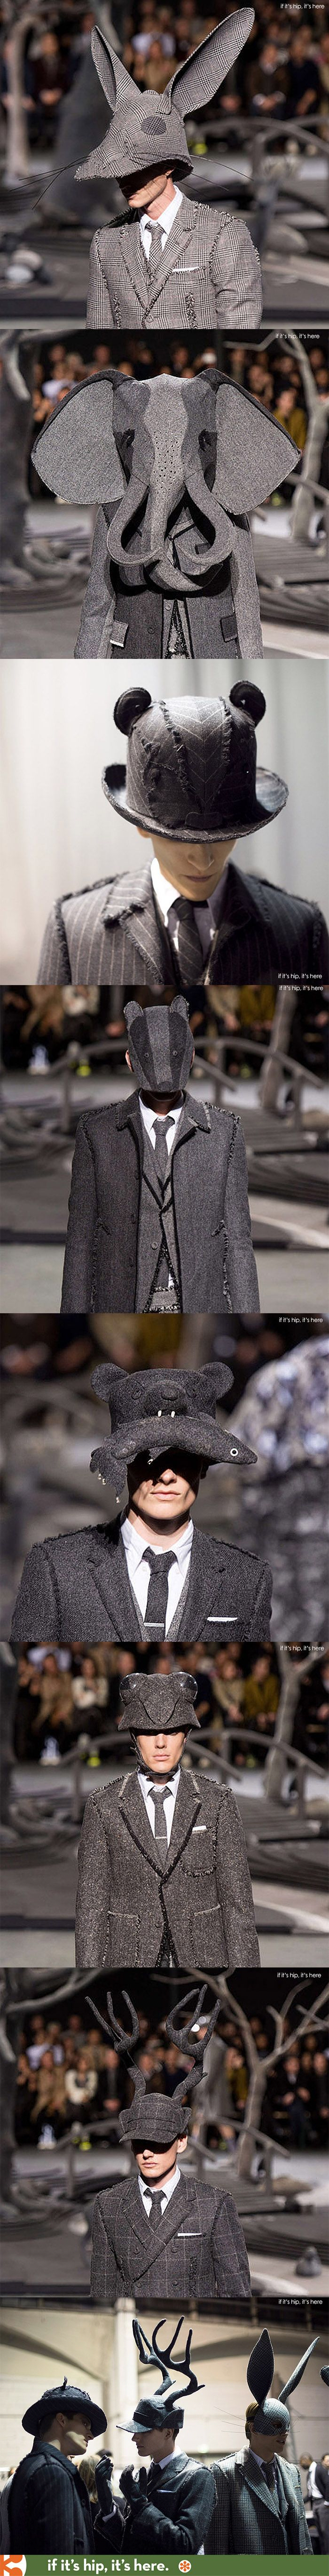 Animal Hats for Thom Browne's 2014 Fall Winter Collection  by milliner Stephen Jones